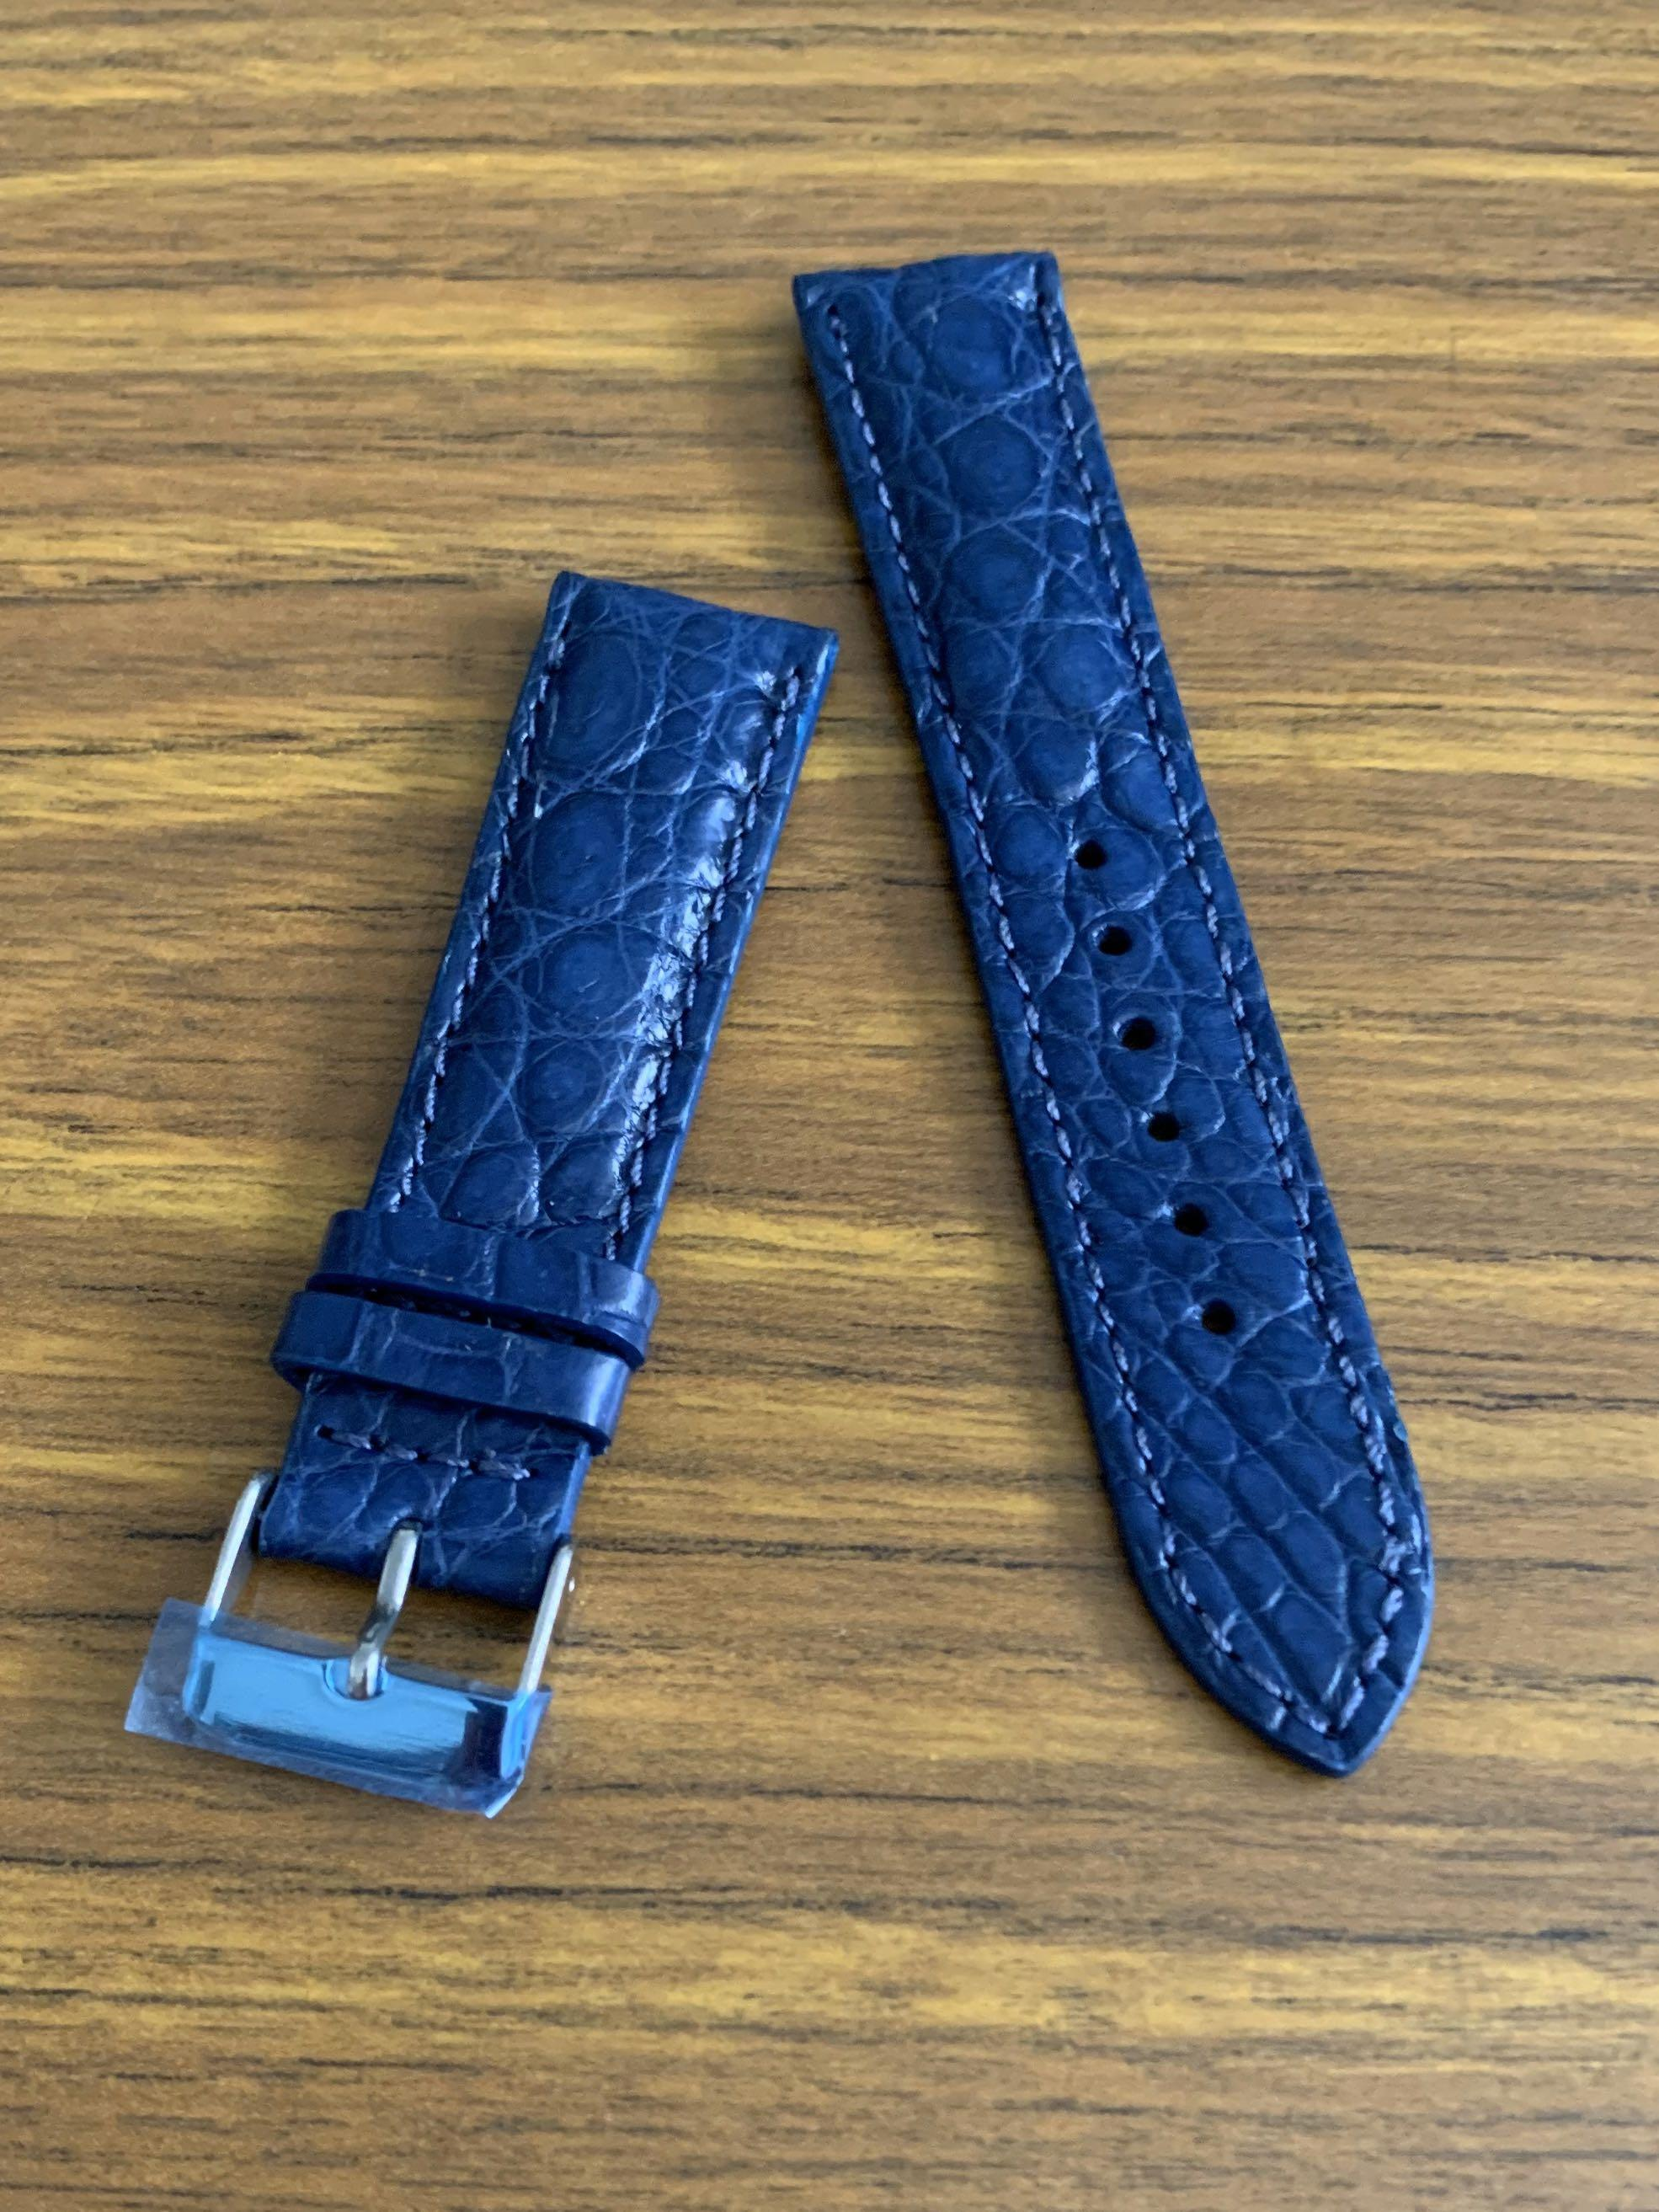 [DISCOUNTED] 20mm/18mm Authentic Monaco Blue Alligator 🐊 Crocodile Watch Strap (rugged outback scales, one of a kind- once sold no more 👍🏻😊) we have other croc scales in Monaco Blue 20mm as well, feel free to choose😊 -Standard length: L-120mm, S-75mm